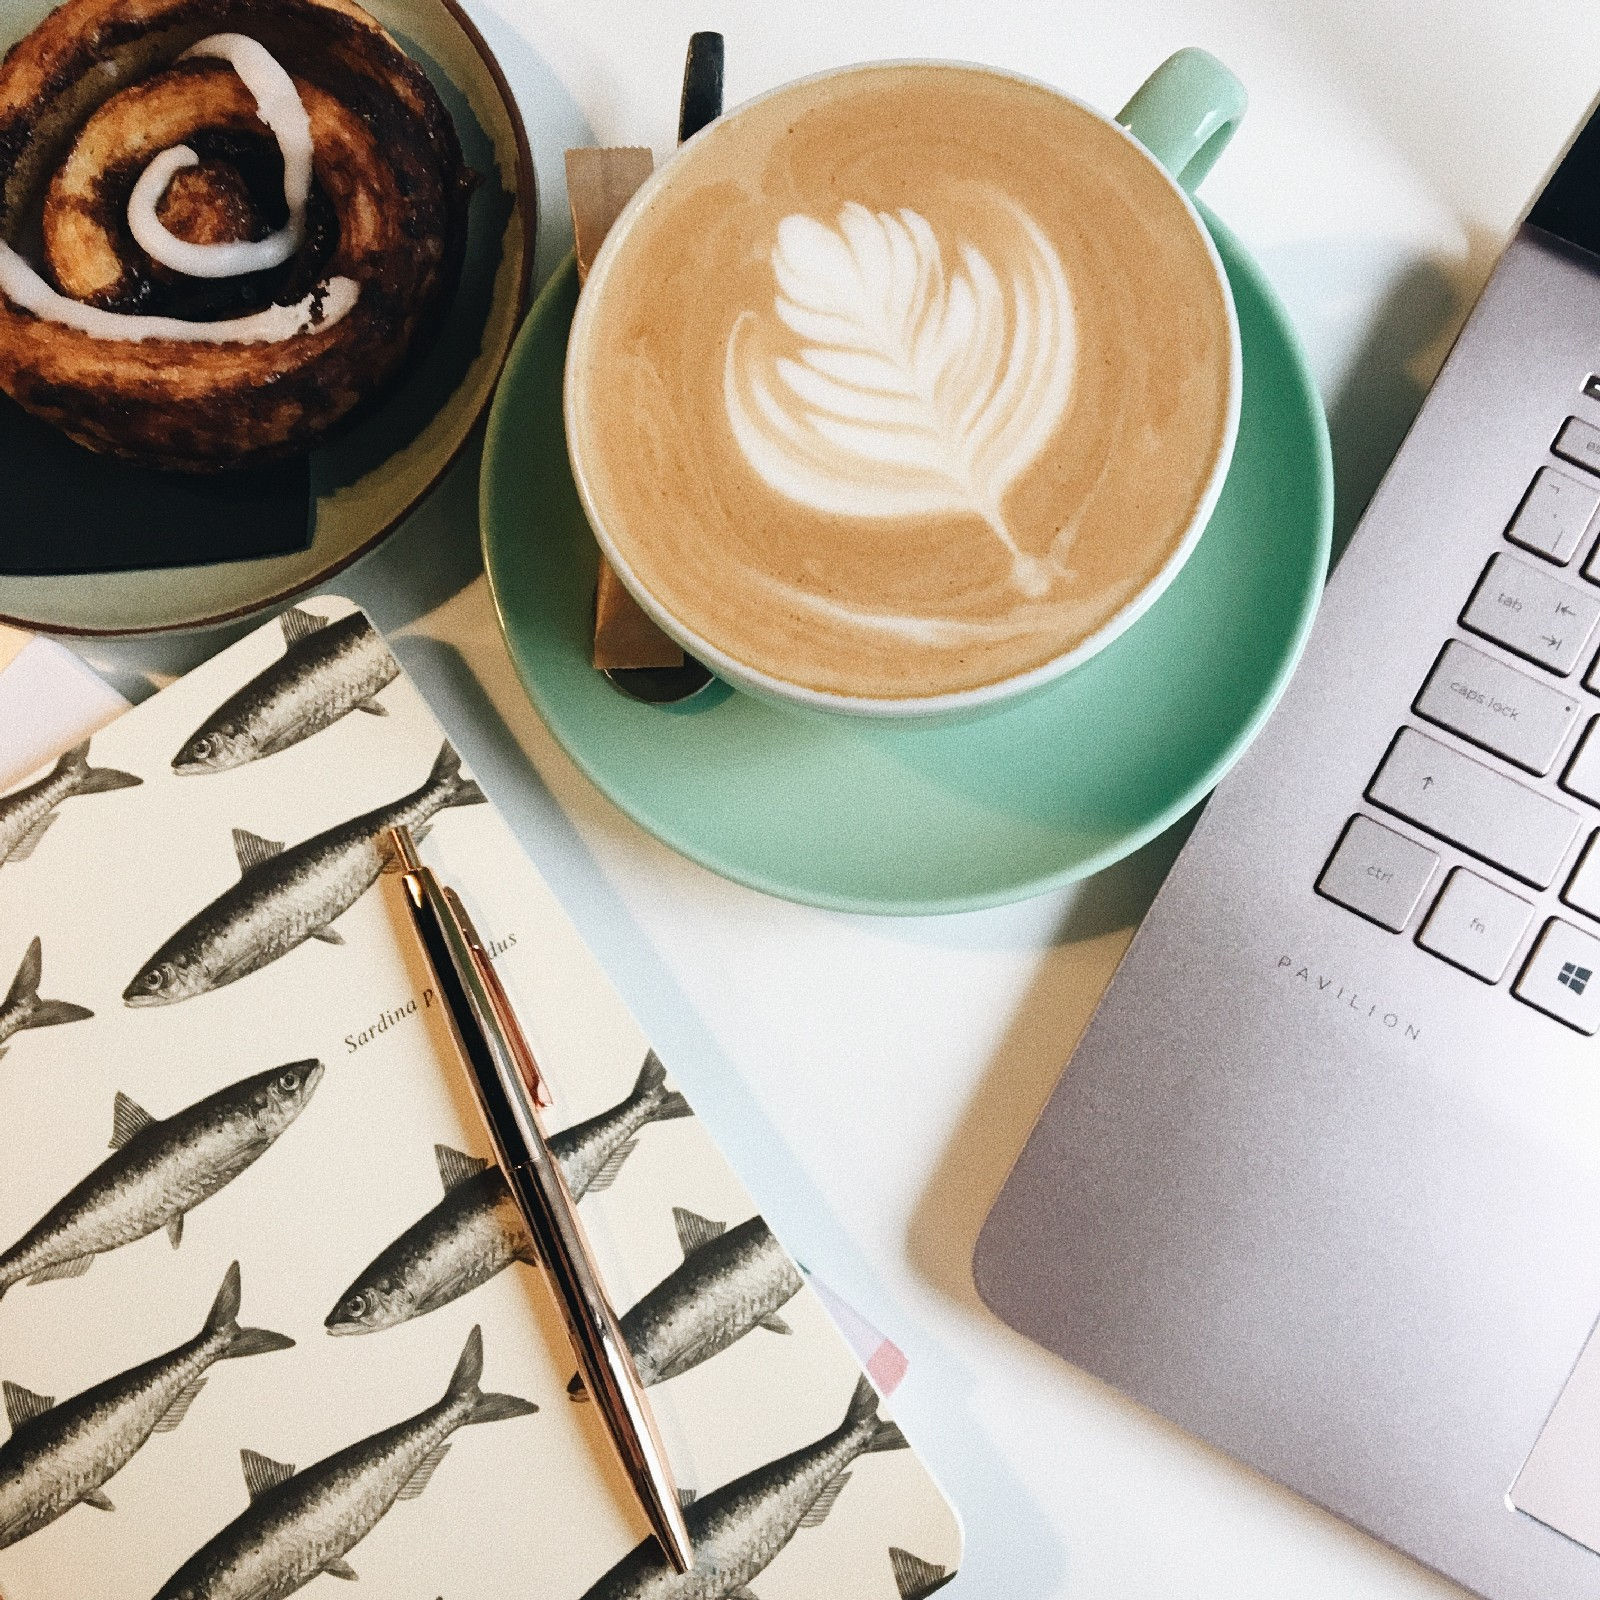 Coffee, cinnamon roll and laptop on table